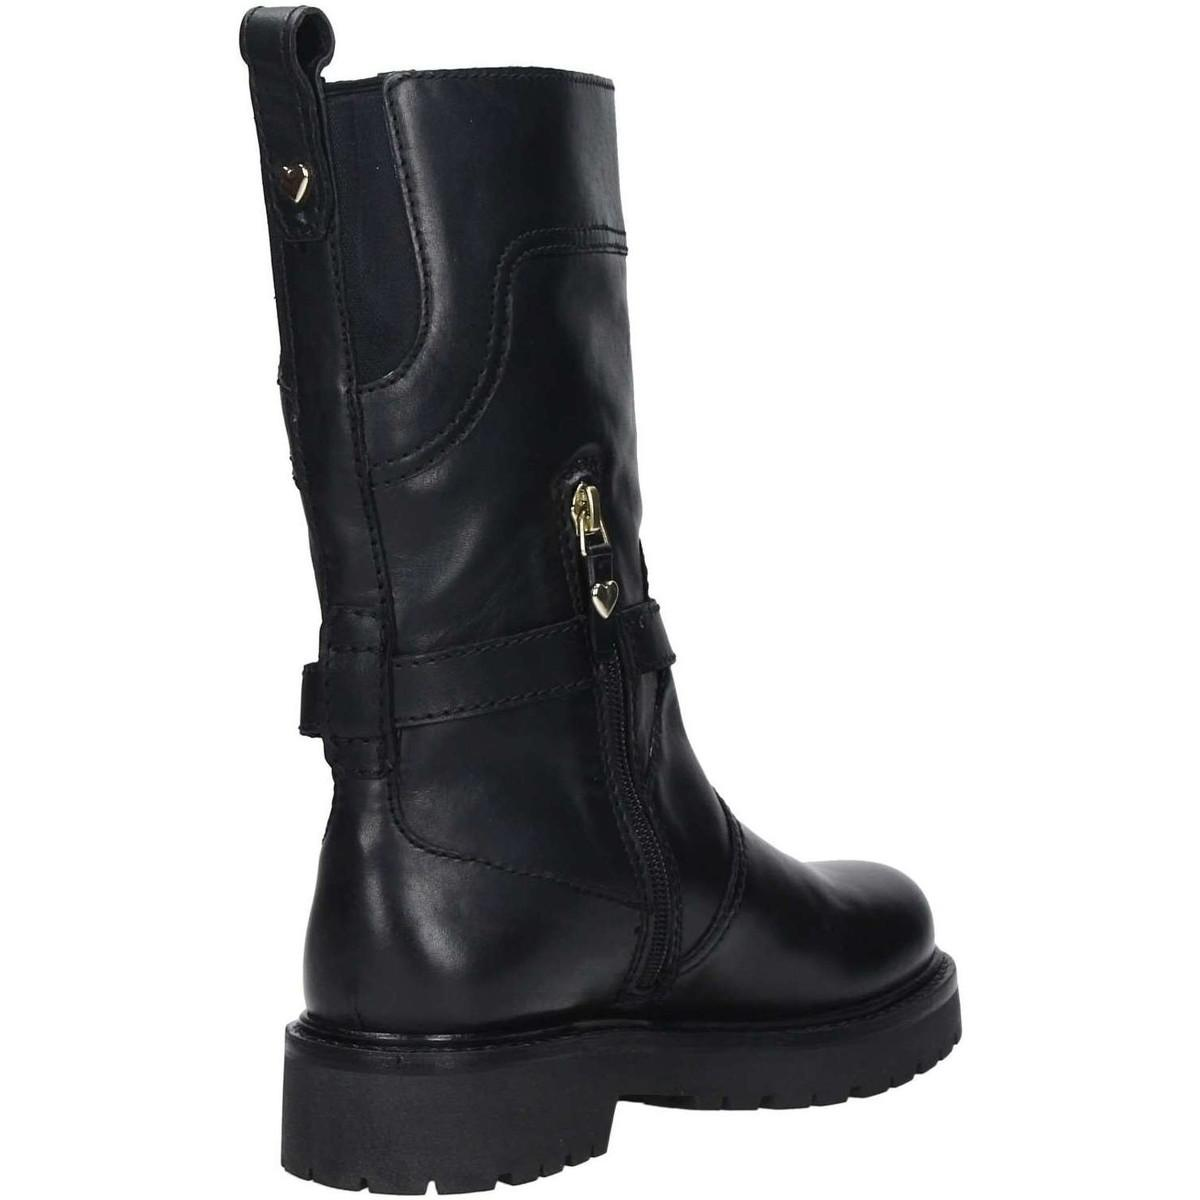 Womens Ca7pma Ankle Boots Twin-Set 5jzZmNDKm